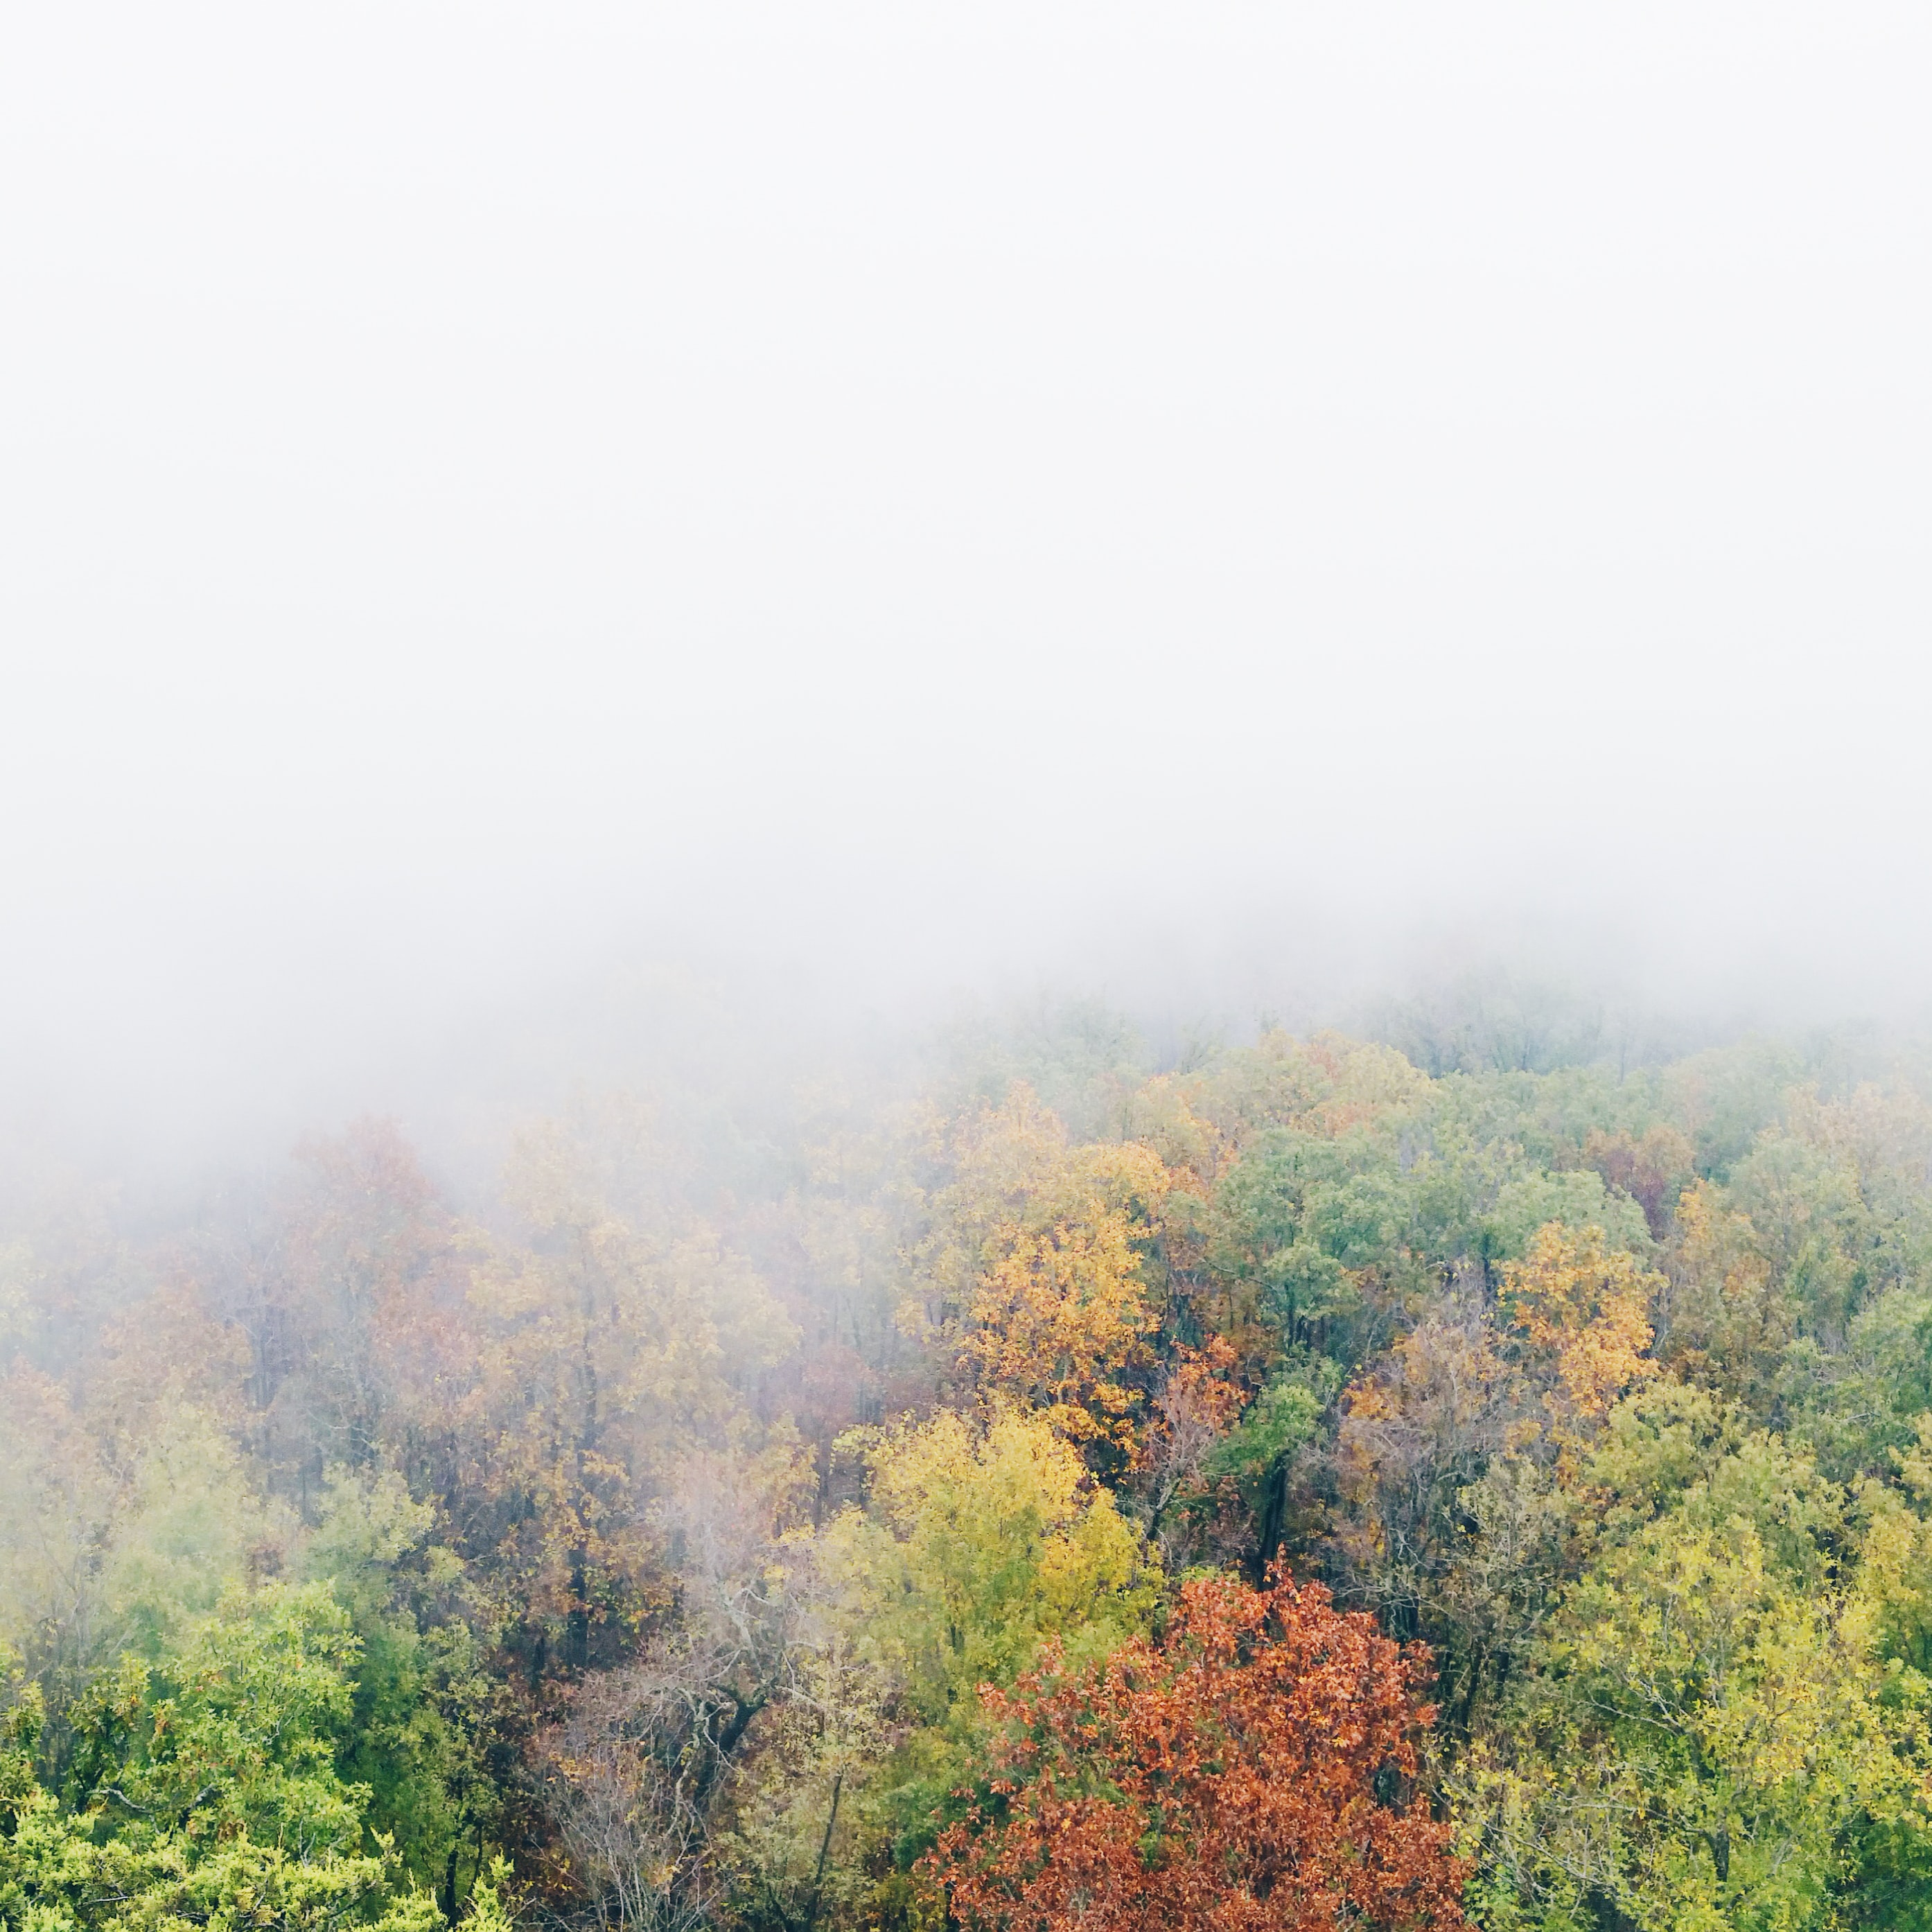 A foggy shot of trees in autumn with green, yellow, orange, and red leaves